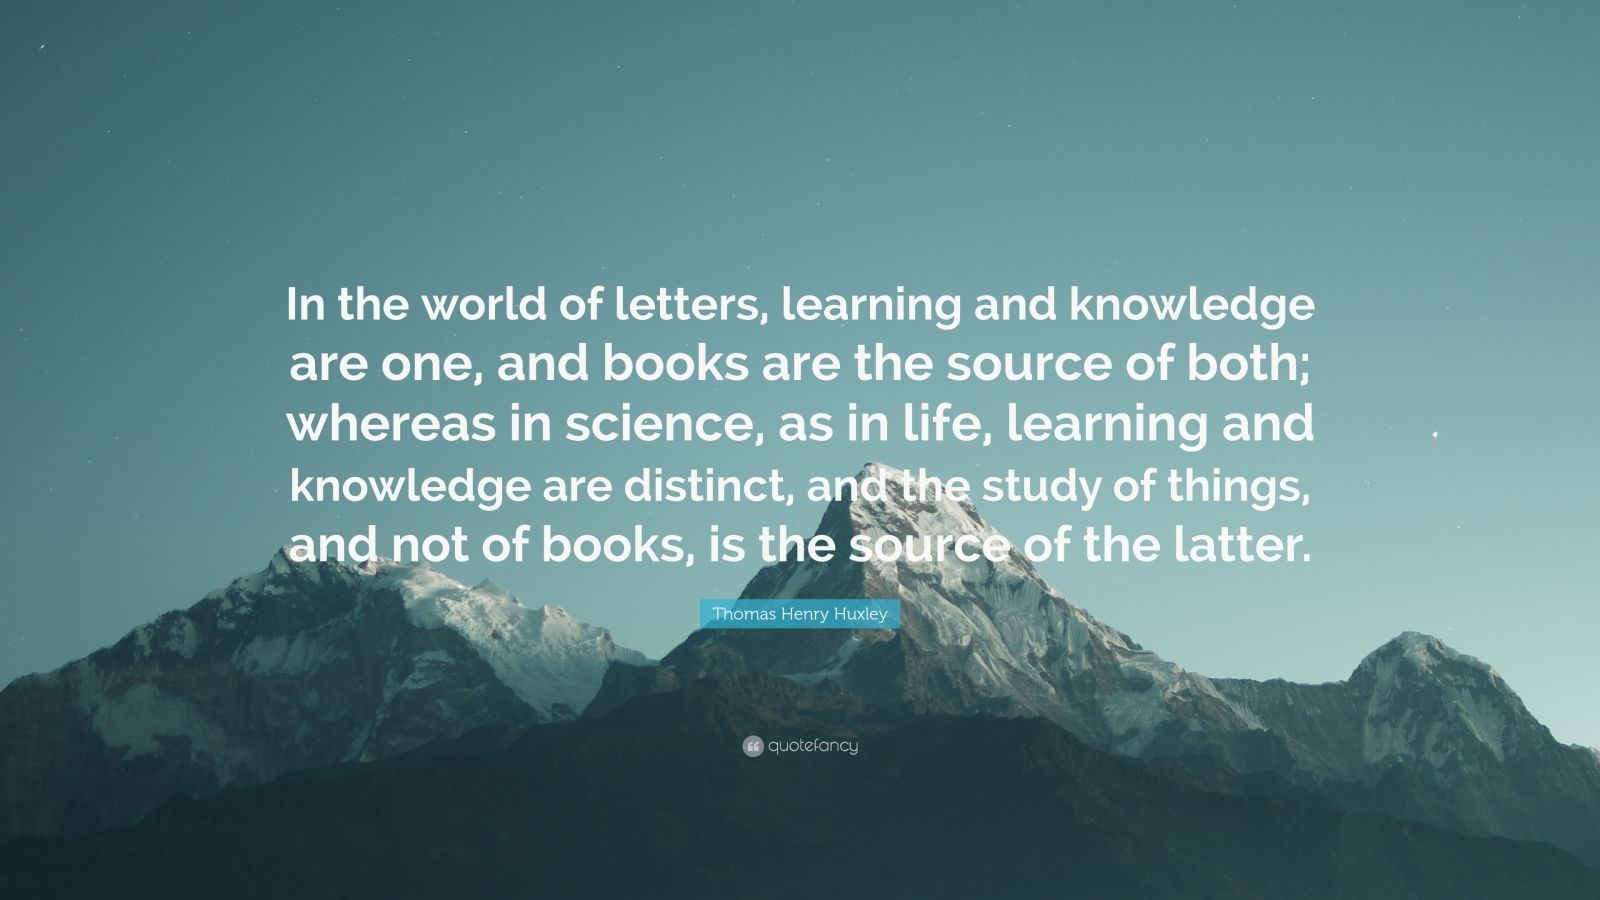 """Thomas Henry Huxley Quote: """"In the world of letters, learning and knowledge are one, and books are the source of both; whereas in science, as in life, learning and knowledge are distinct, and the study of things, and not of books, is the source of the latter."""""""